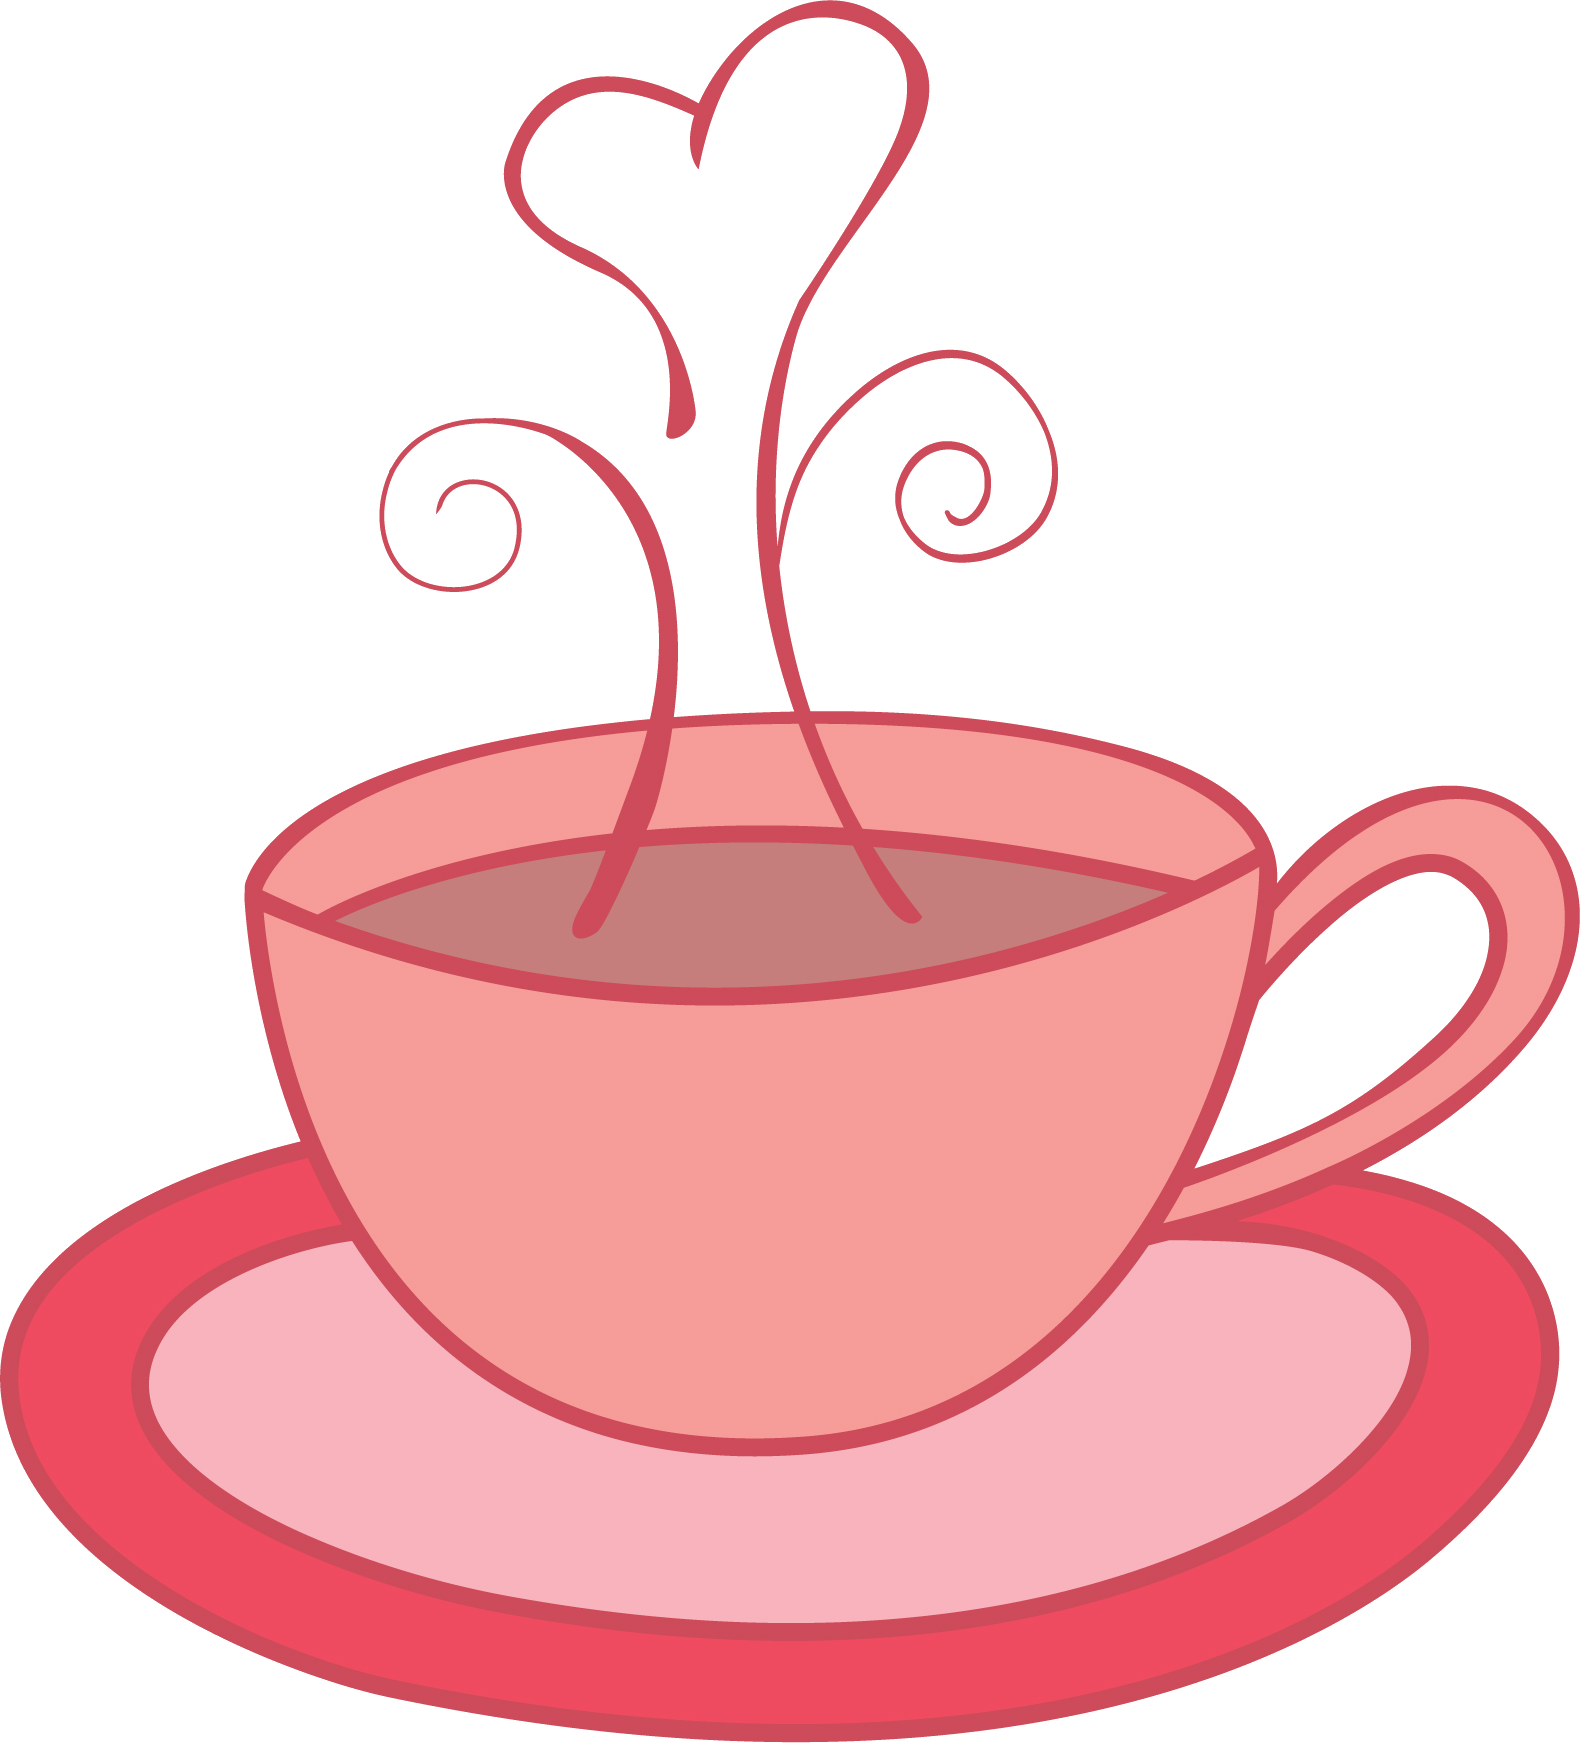 1580x1743 Collection Of Tea Clipart Free High Quality, Free Cliparts